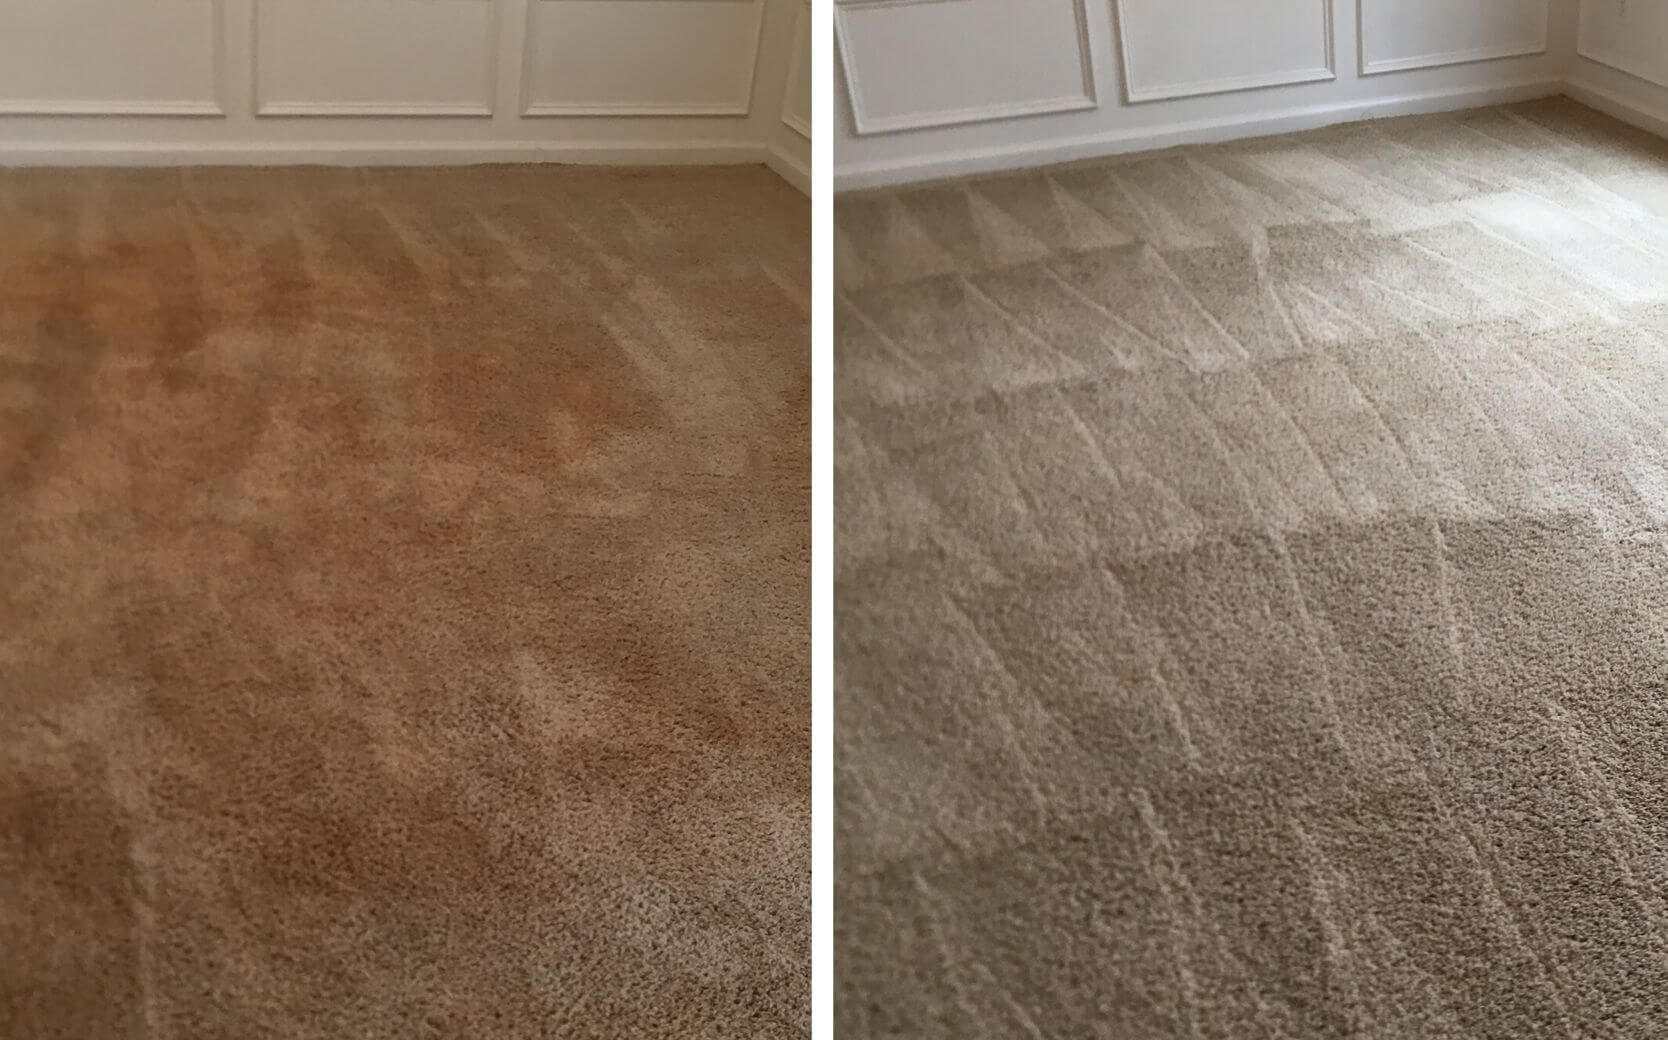 brown carpet before and after carpet cleaning in atlanta ga